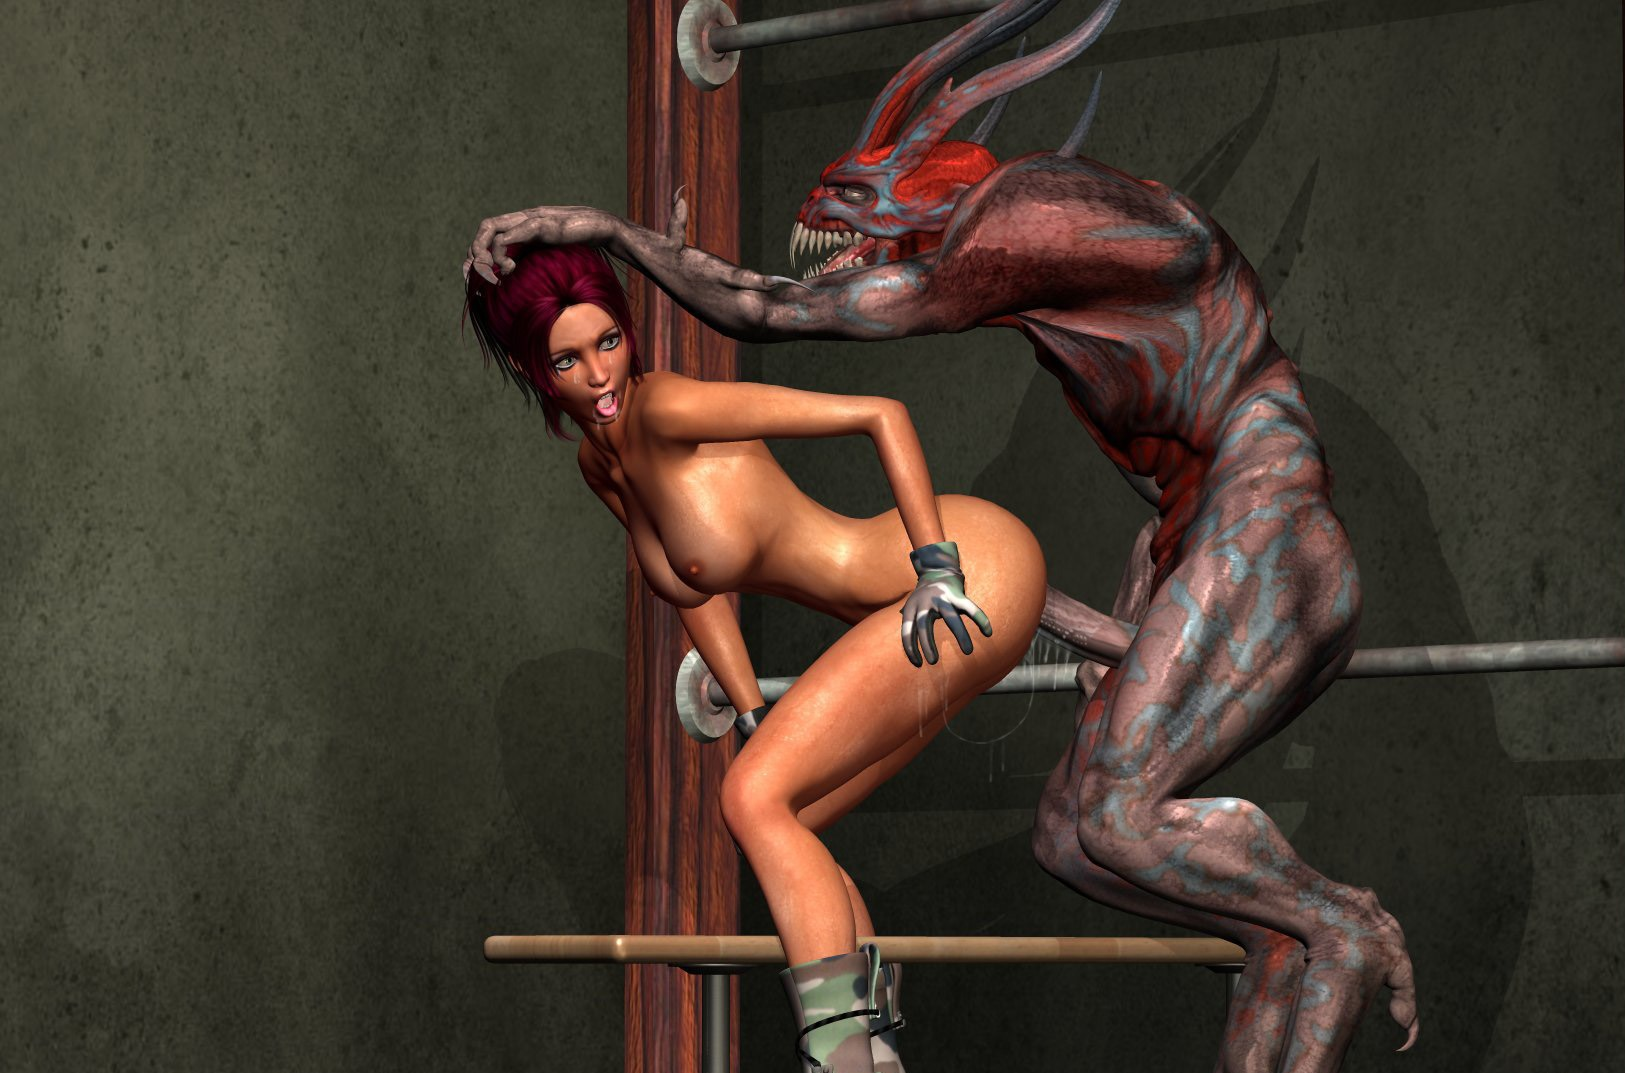 Monster devil porn pictures nude video